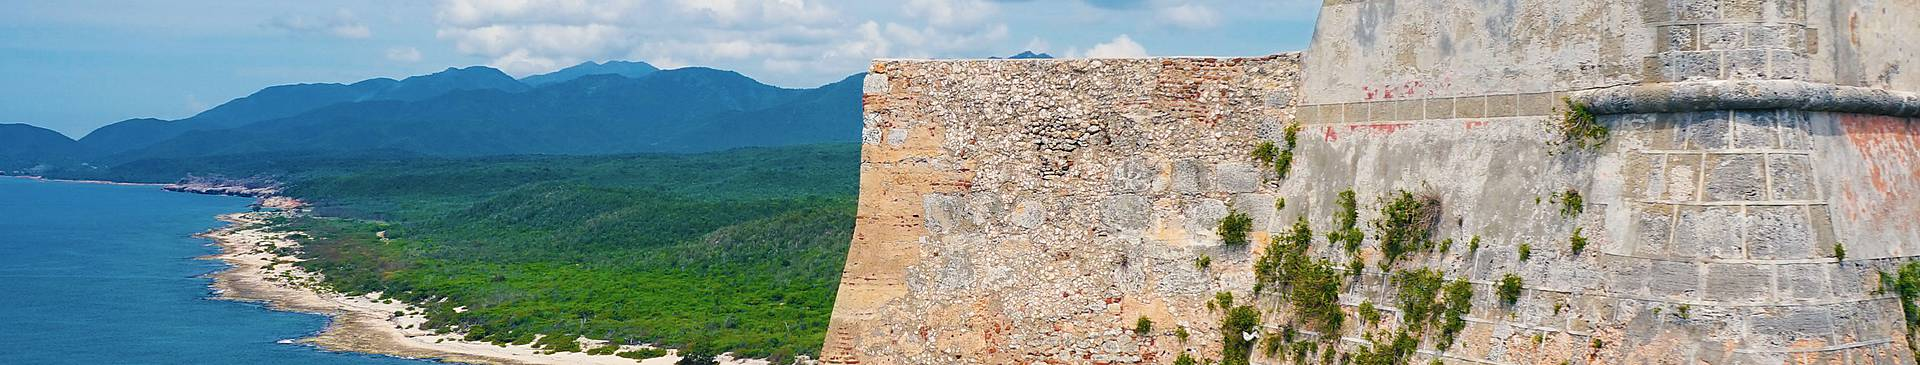 Historical sites in Cuba